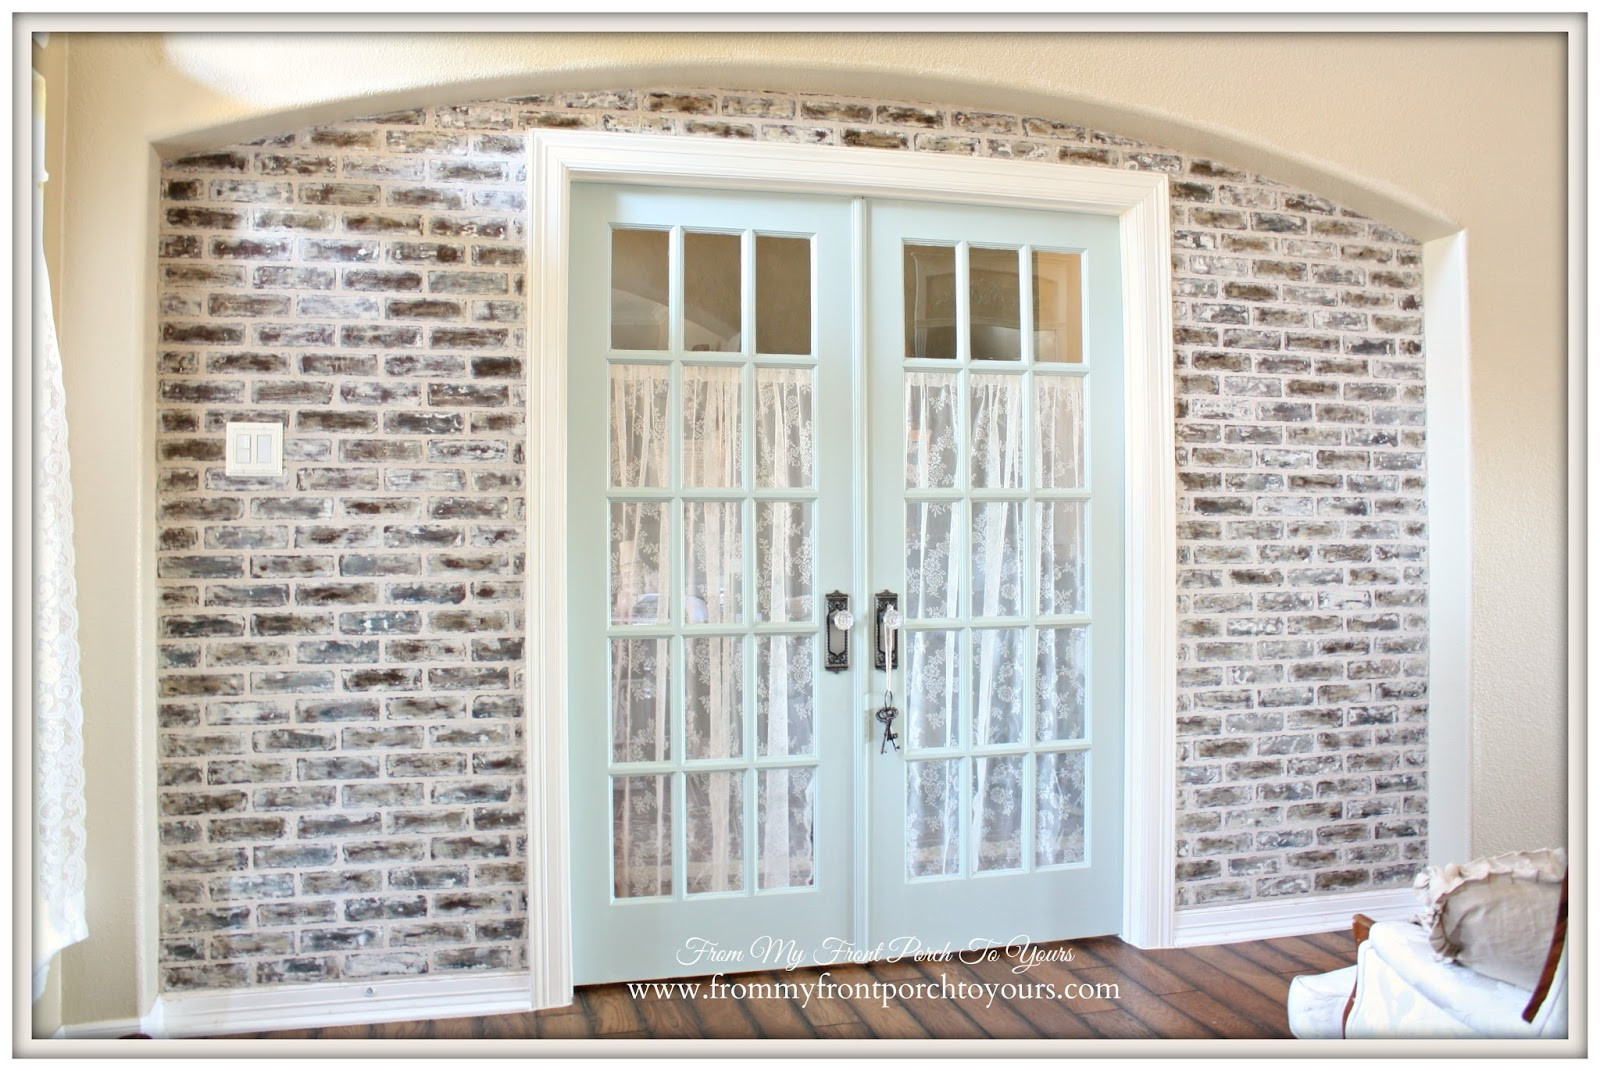 Best ideas about DIY Faux Brick Wall . Save or Pin From My Front Porch To Yours DIY Faux Brick Wall Tutorial Now.